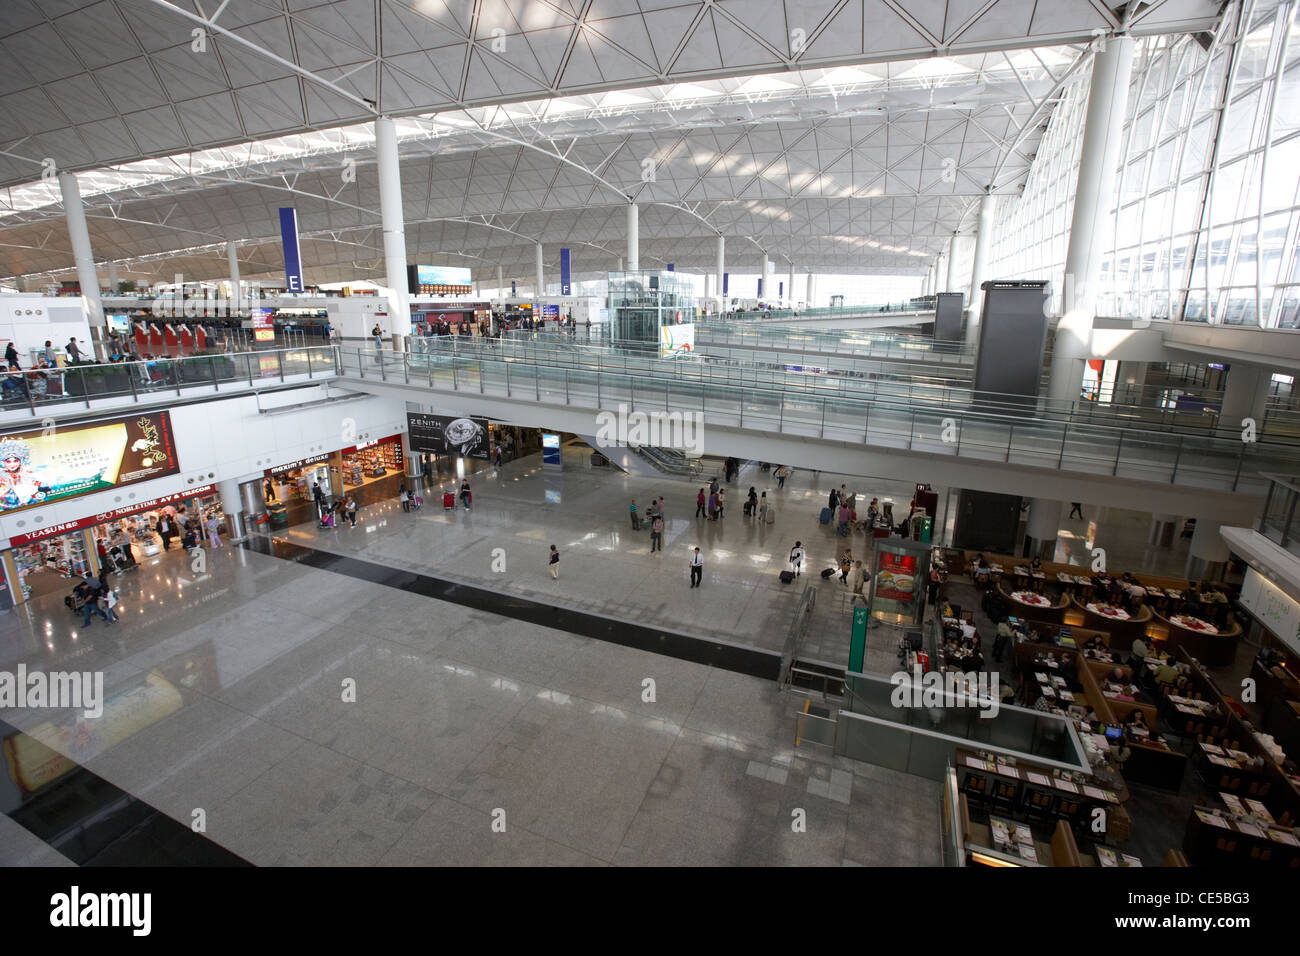 hong kong international airport chek lap kok hksar china asia Stock Photo